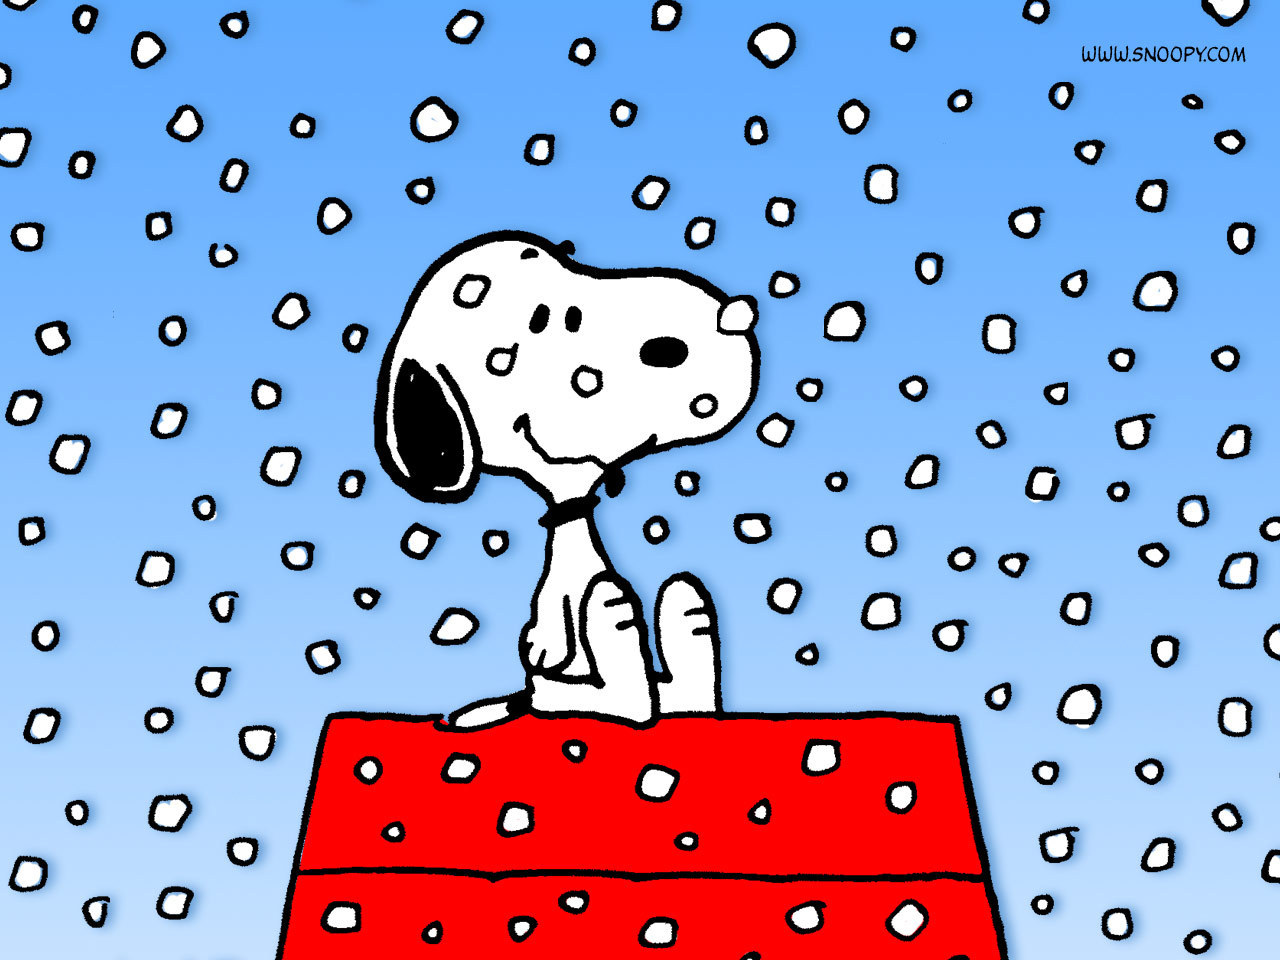 Christmas Wallpaper snoopy christmas wallpaper 1280x960